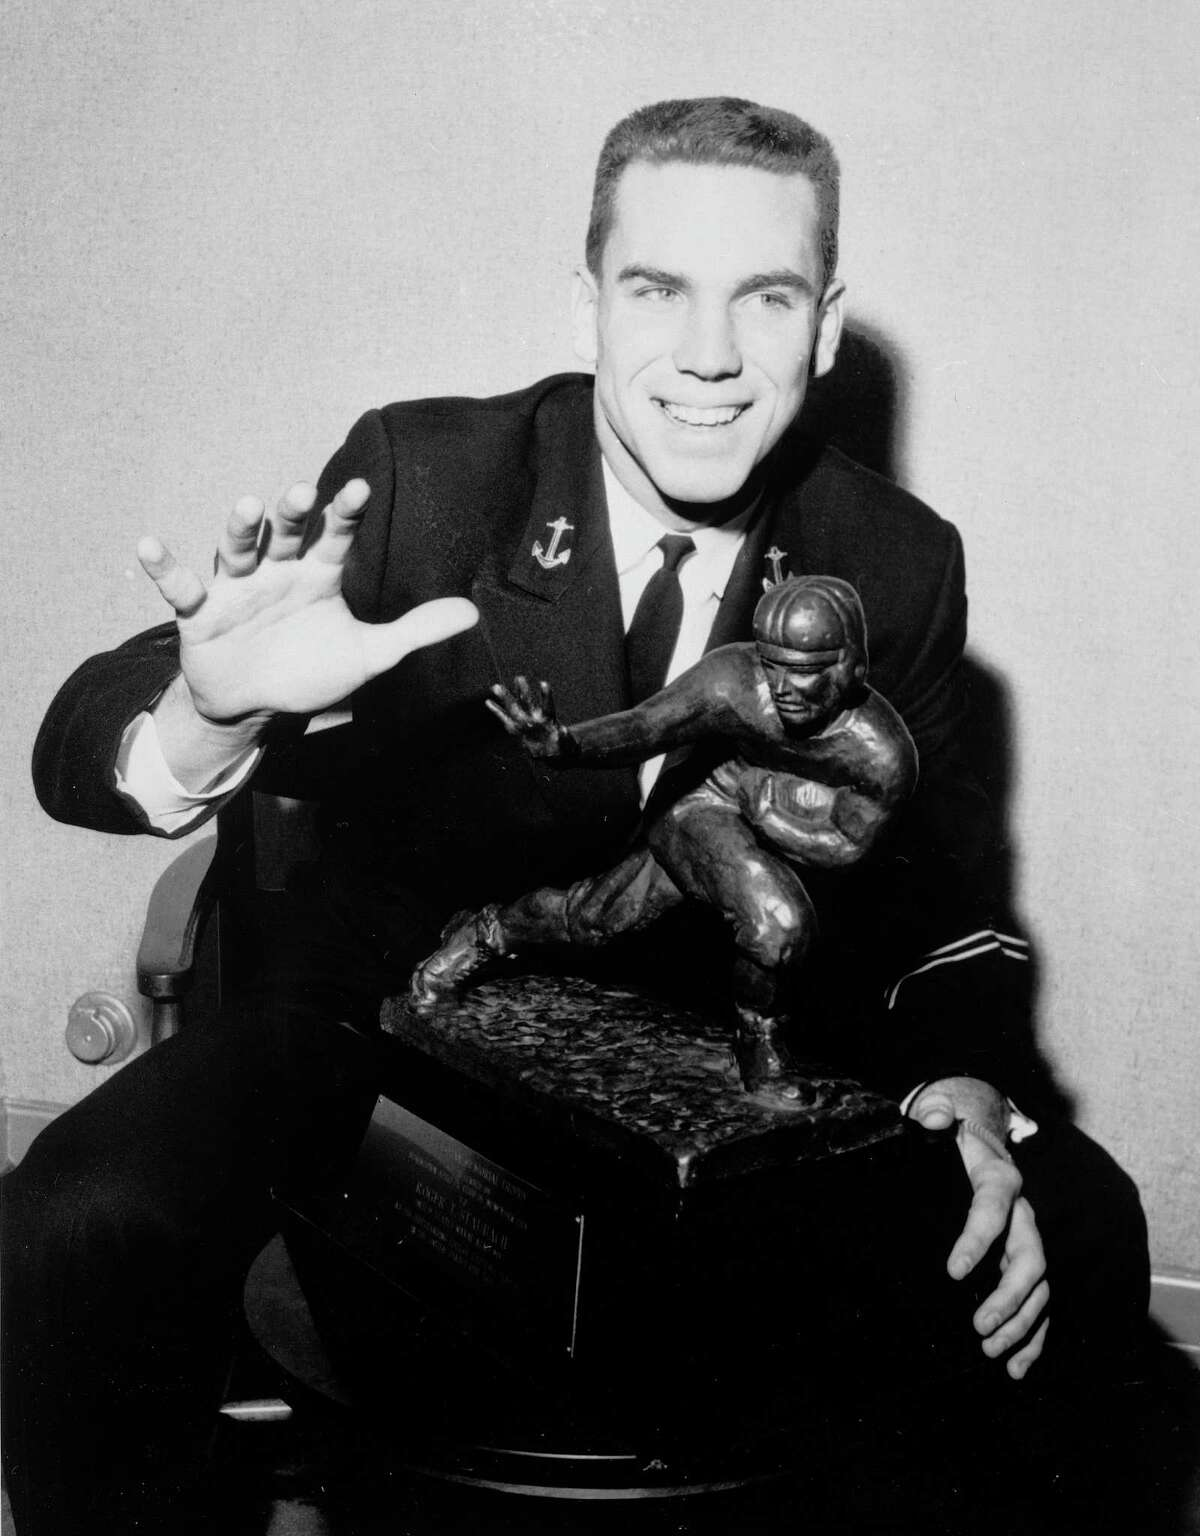 his is a Dec. 11, 1963, file photo showing Roger Staubach, Navy quarterback, posing with the Heisman trophy in New York, prior to receiving the award formally at a luncheon. The Navy quarterback went on to the 1964 Cotton Bowl, completing a then-record 21 of 31 pass attempts for 228 yards, but his second-ranked Midshipmen lost the National Championship battle to No. 1 Texas, 28-6. Source: attcottonbowl.com